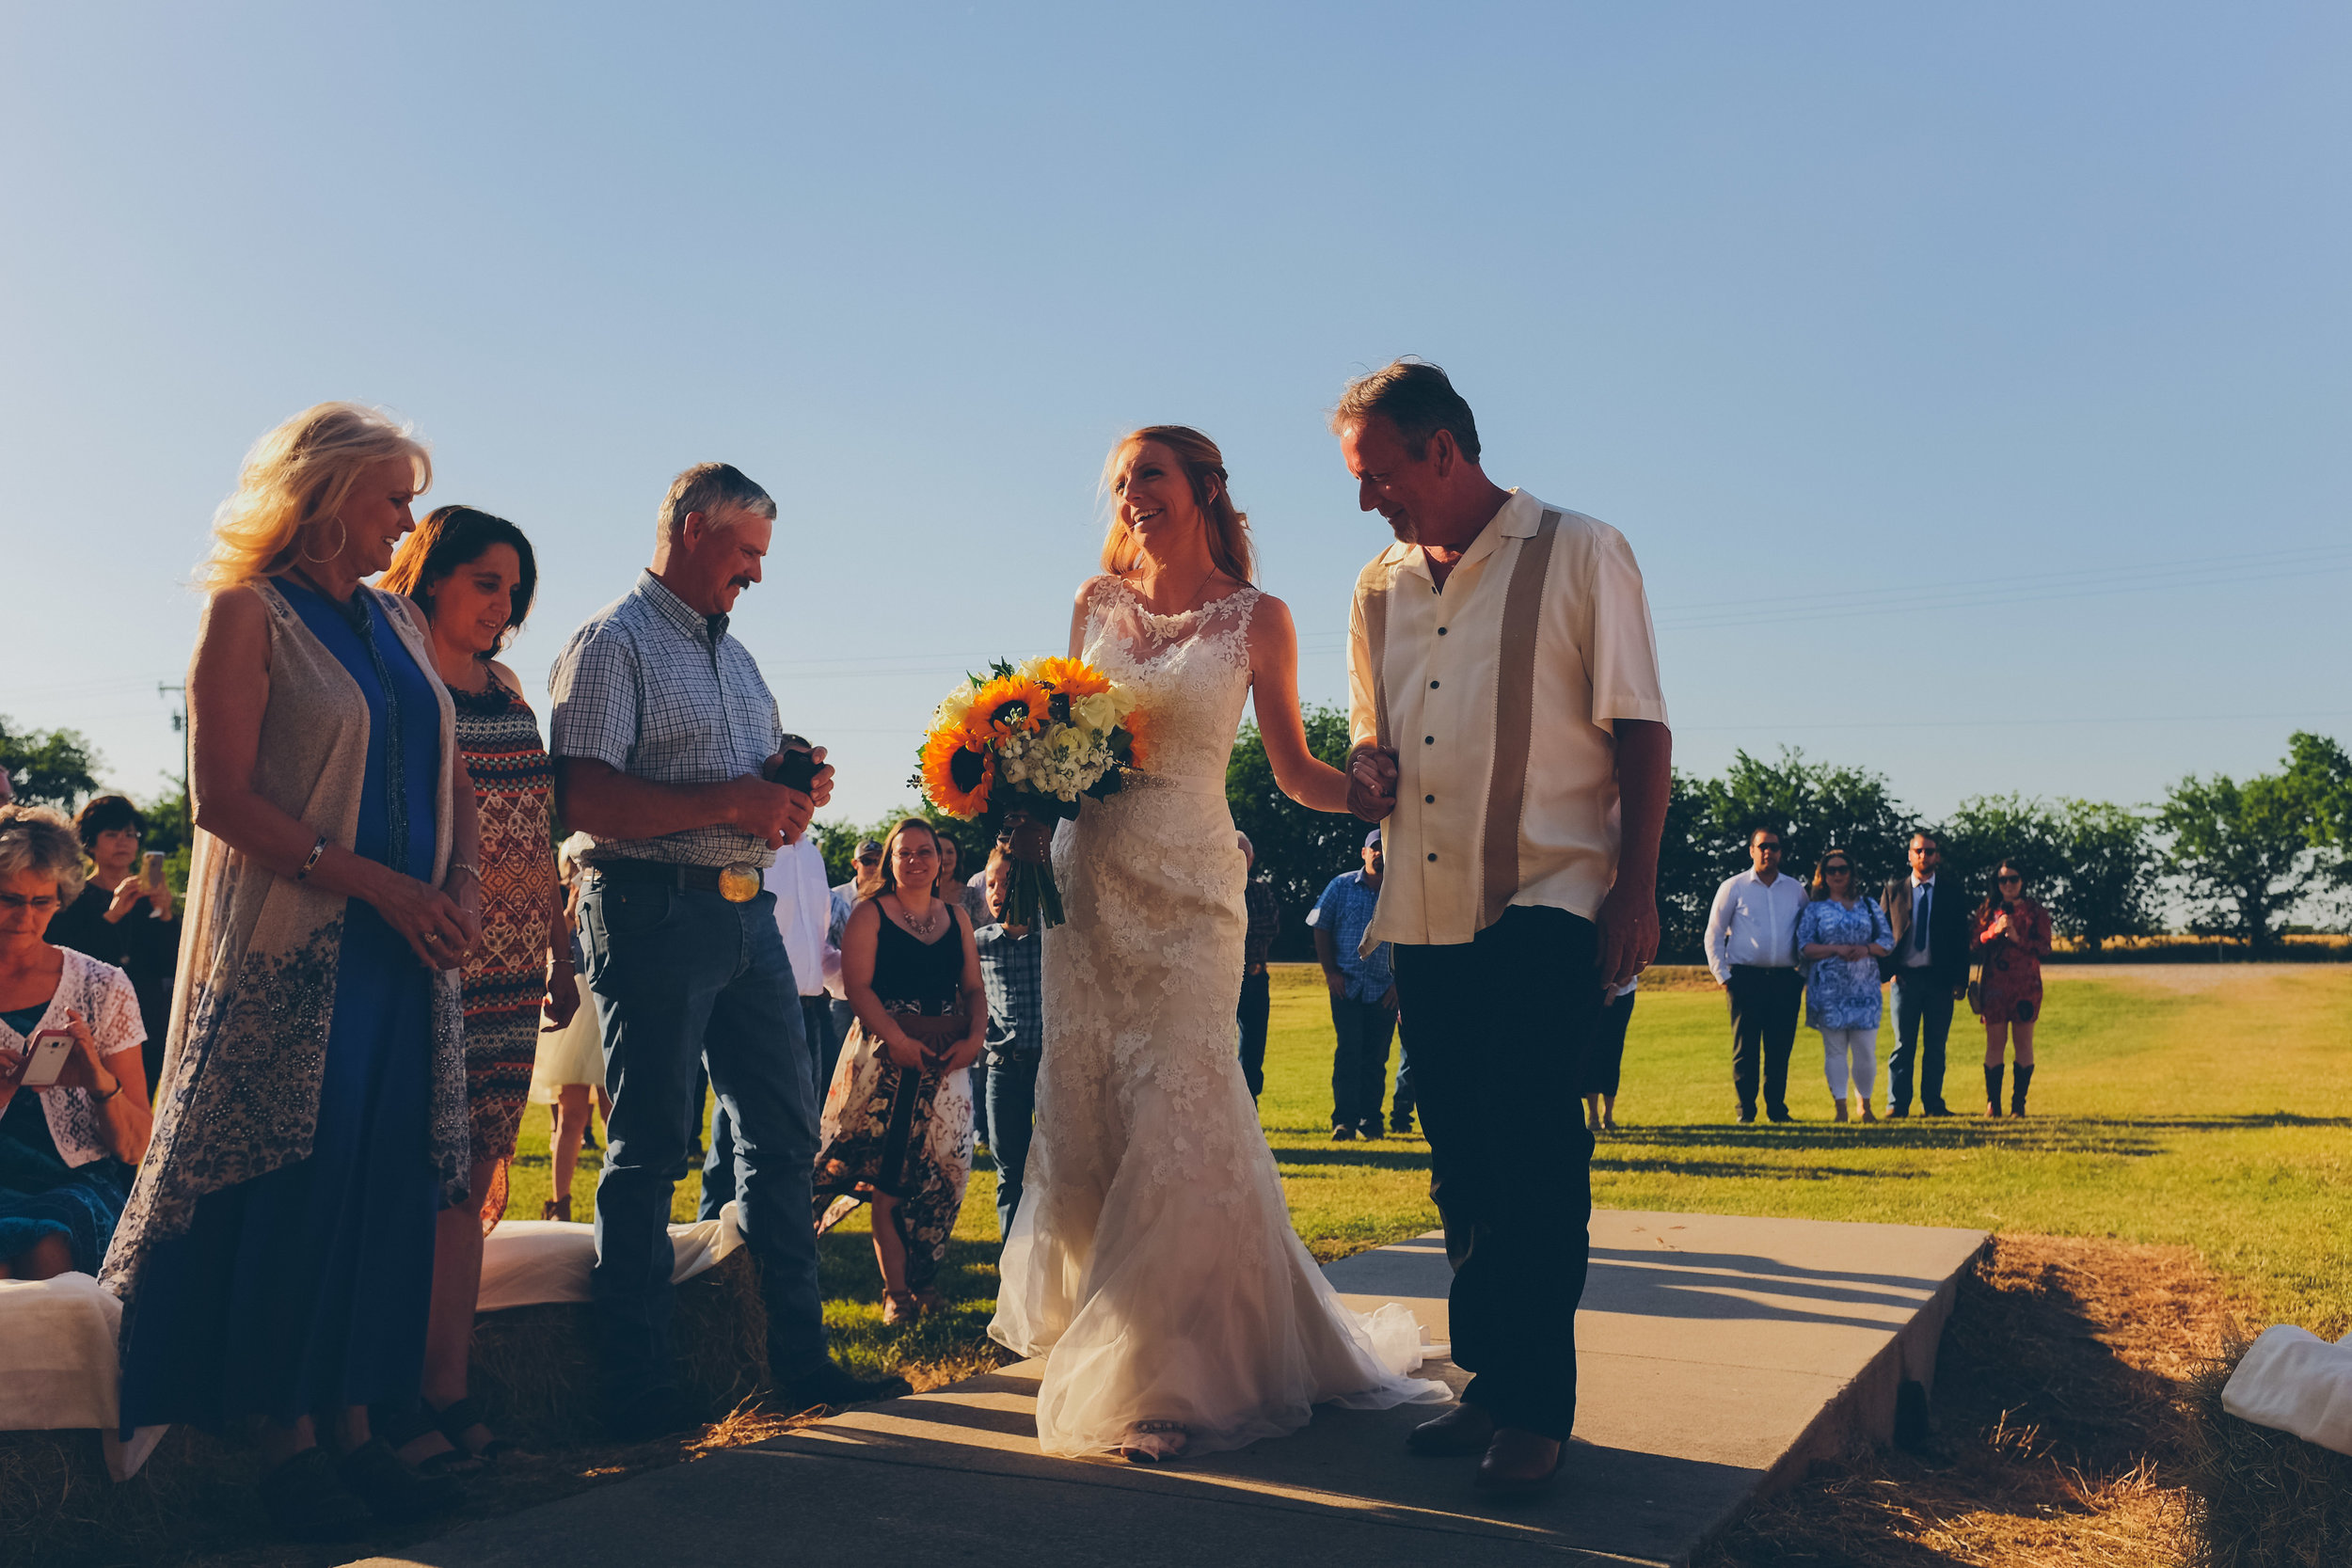 Bride and her father walking down the isle in outdoor country wedding.